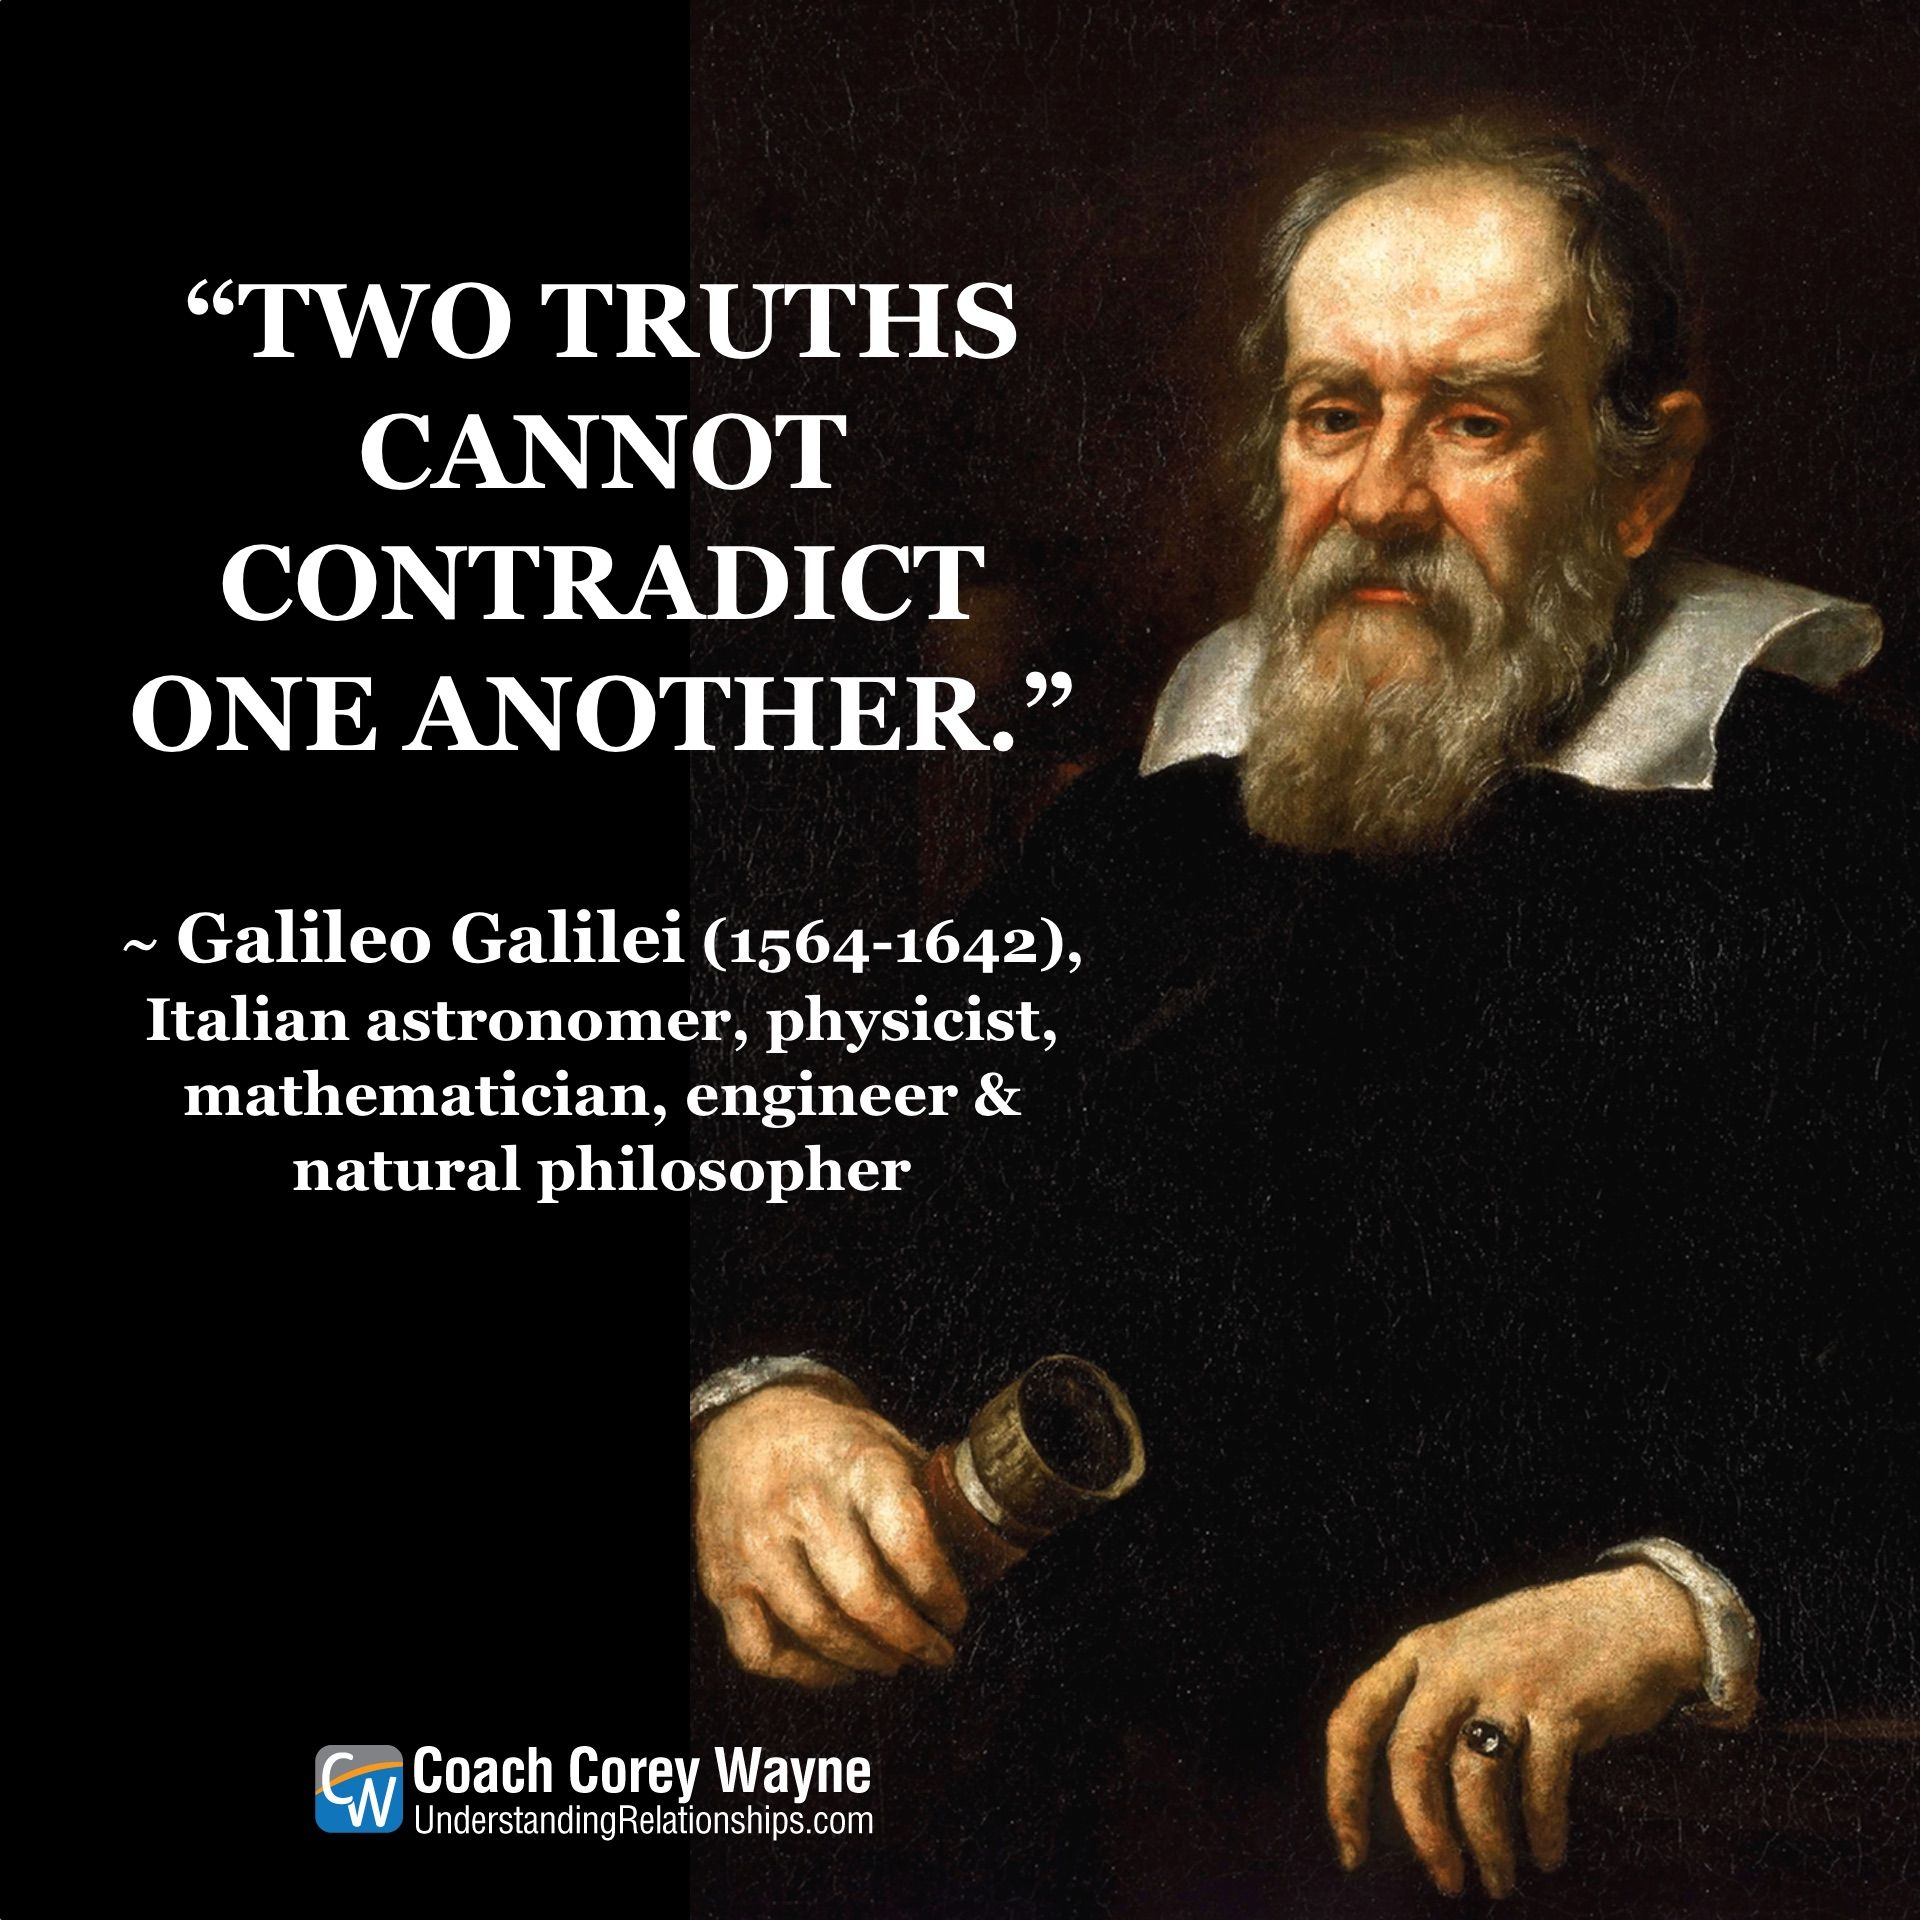 Two Truths Cannot Contradict One Another Galileo Galilei 1564 1642 Italian Astronomer Physicist Mathema Scientific Revolution Physicist Mathematician